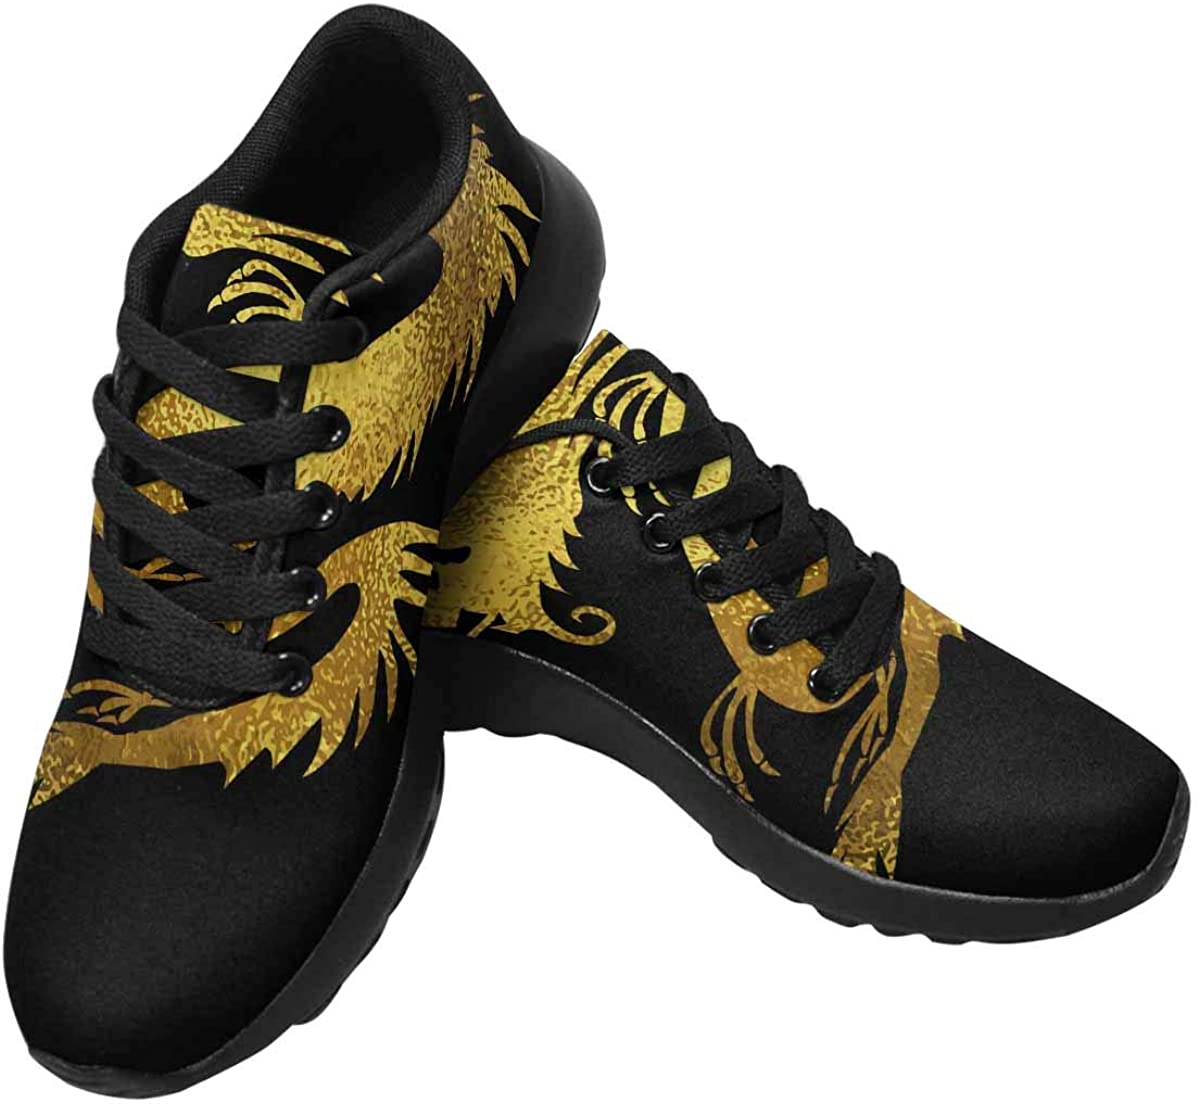 InterestPrint Golden Foil Women's Running Shoes - Casual Breathable Athletic Tennis Sneakers